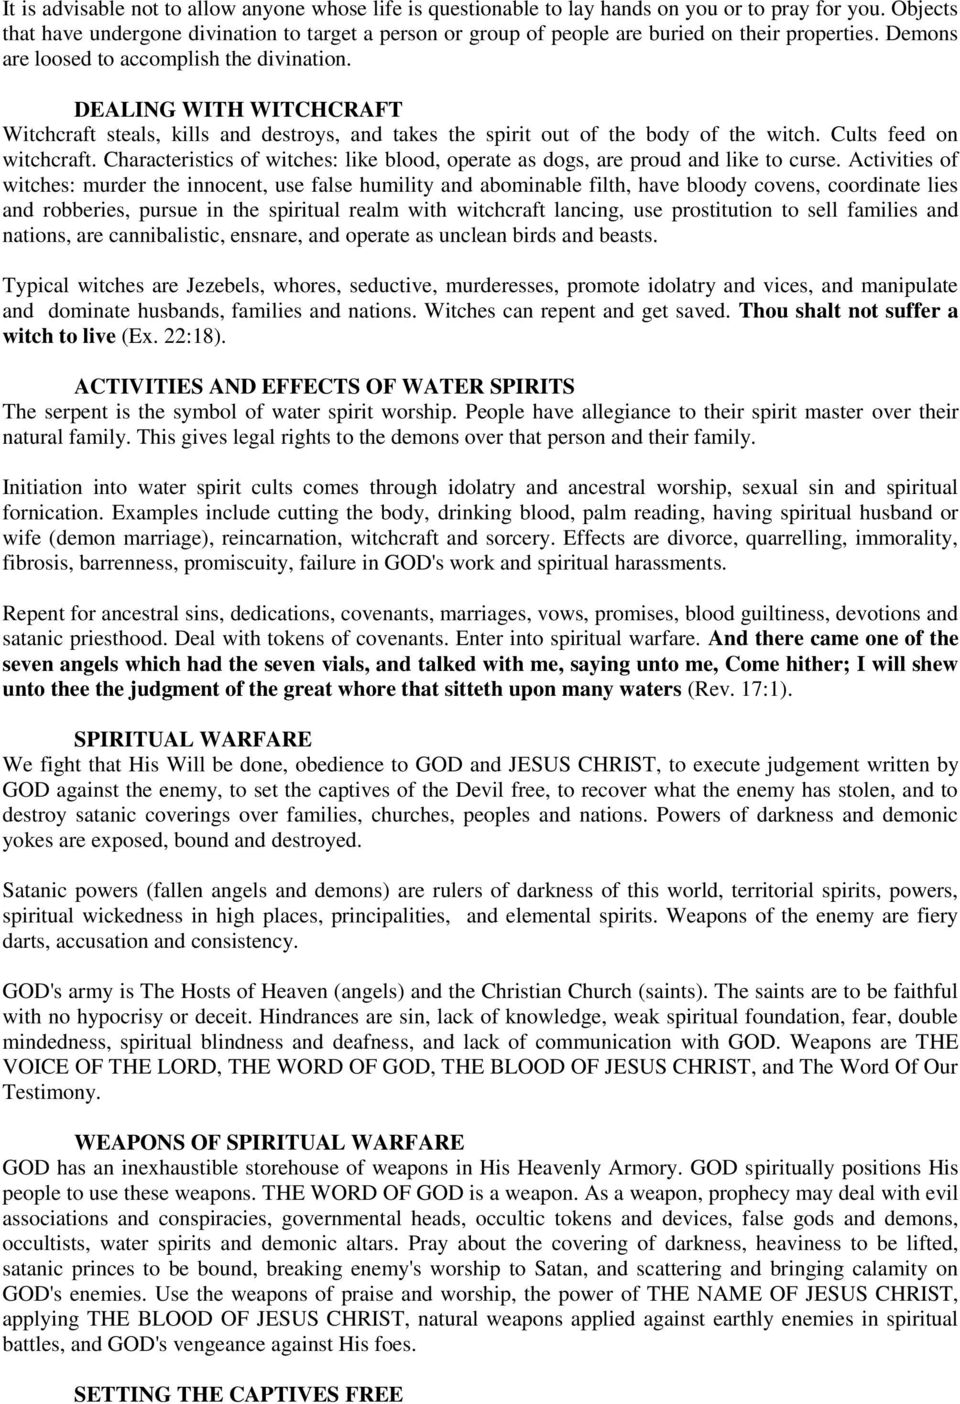 WITCHCRAFT DELIVERANCE MANUAL -1 (part 1) - PDF